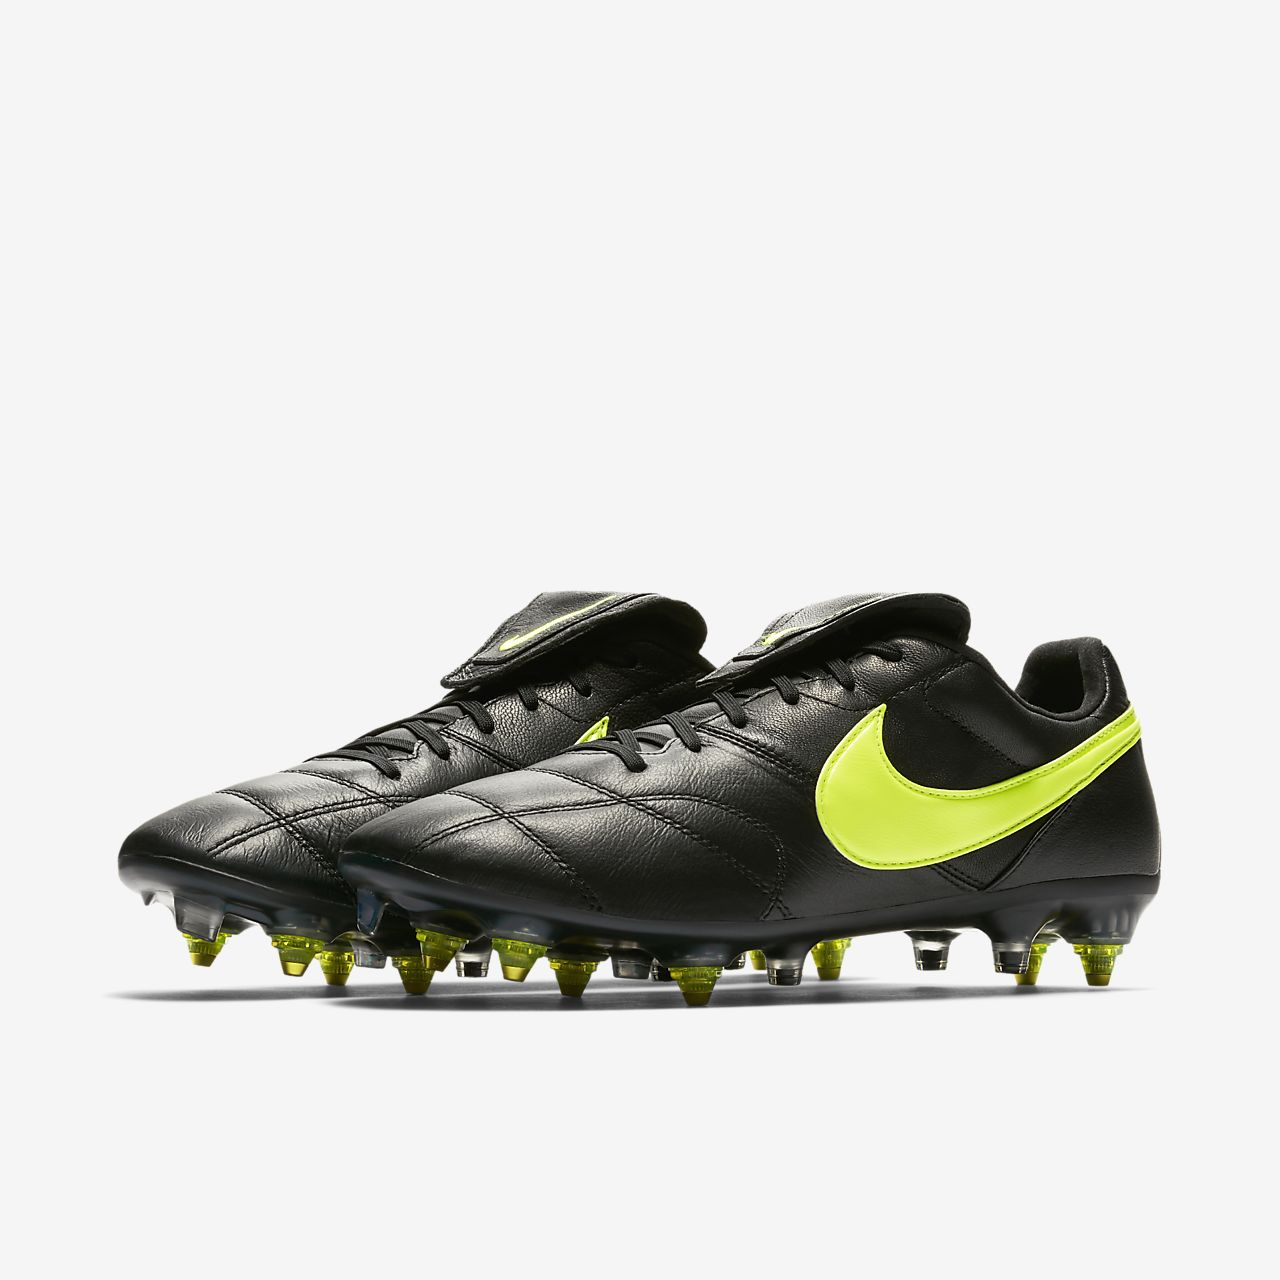 Les Hommes Premier Ii Fu Ac Sgpro? Chaussures Nike Ball Z3HpImk